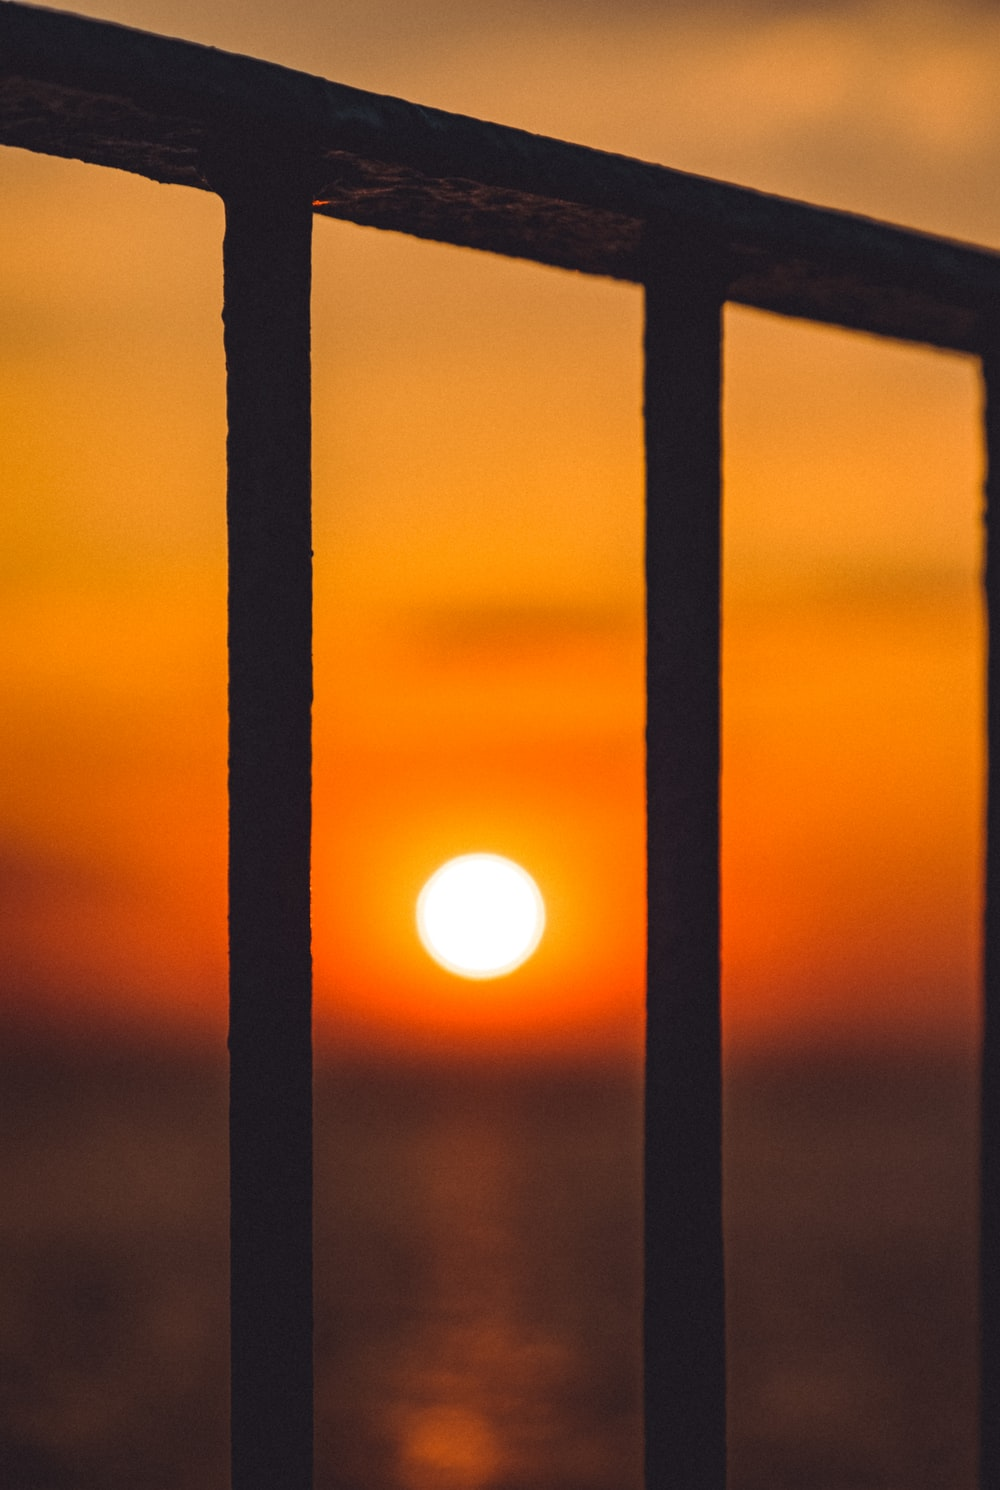 silhouette of window during sunset